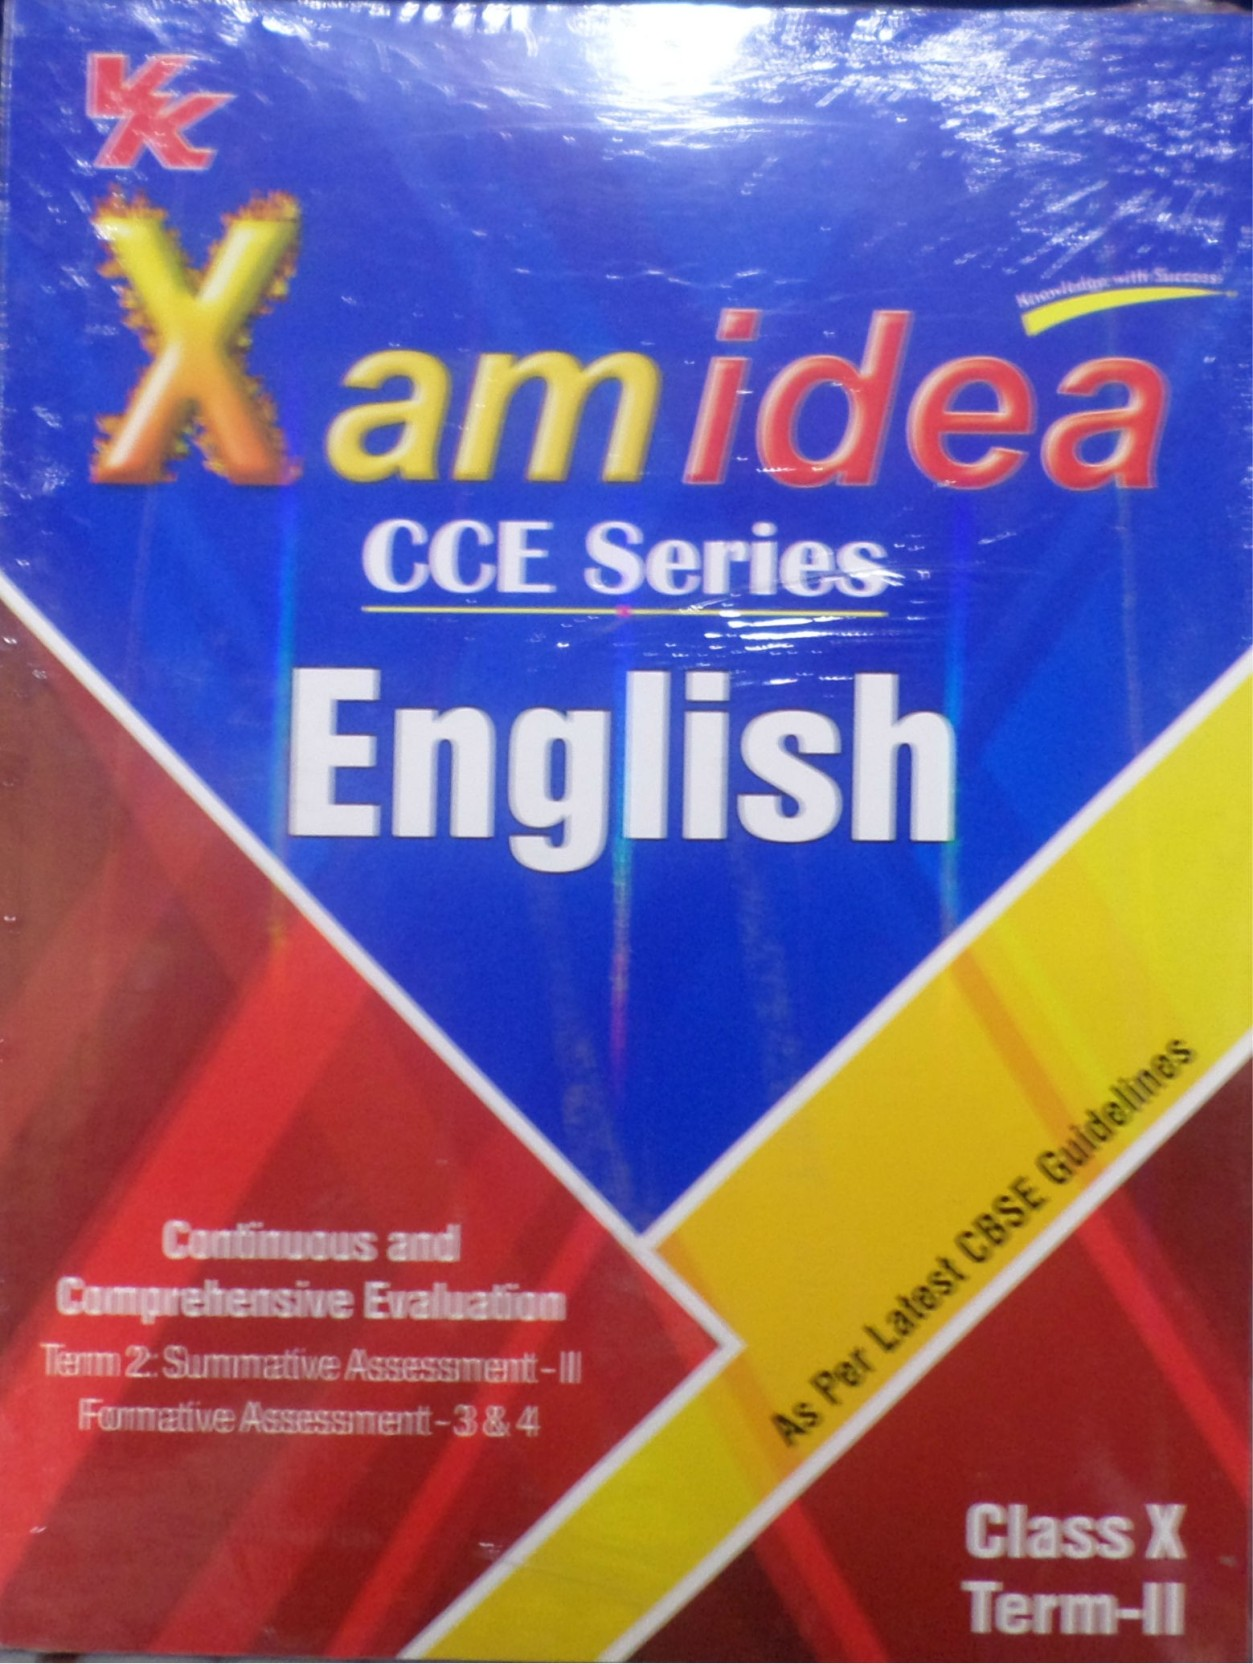 Xam Idea English (Continuous and Comprehensive Evaluation) Term - 2 (Class  - 10. Home